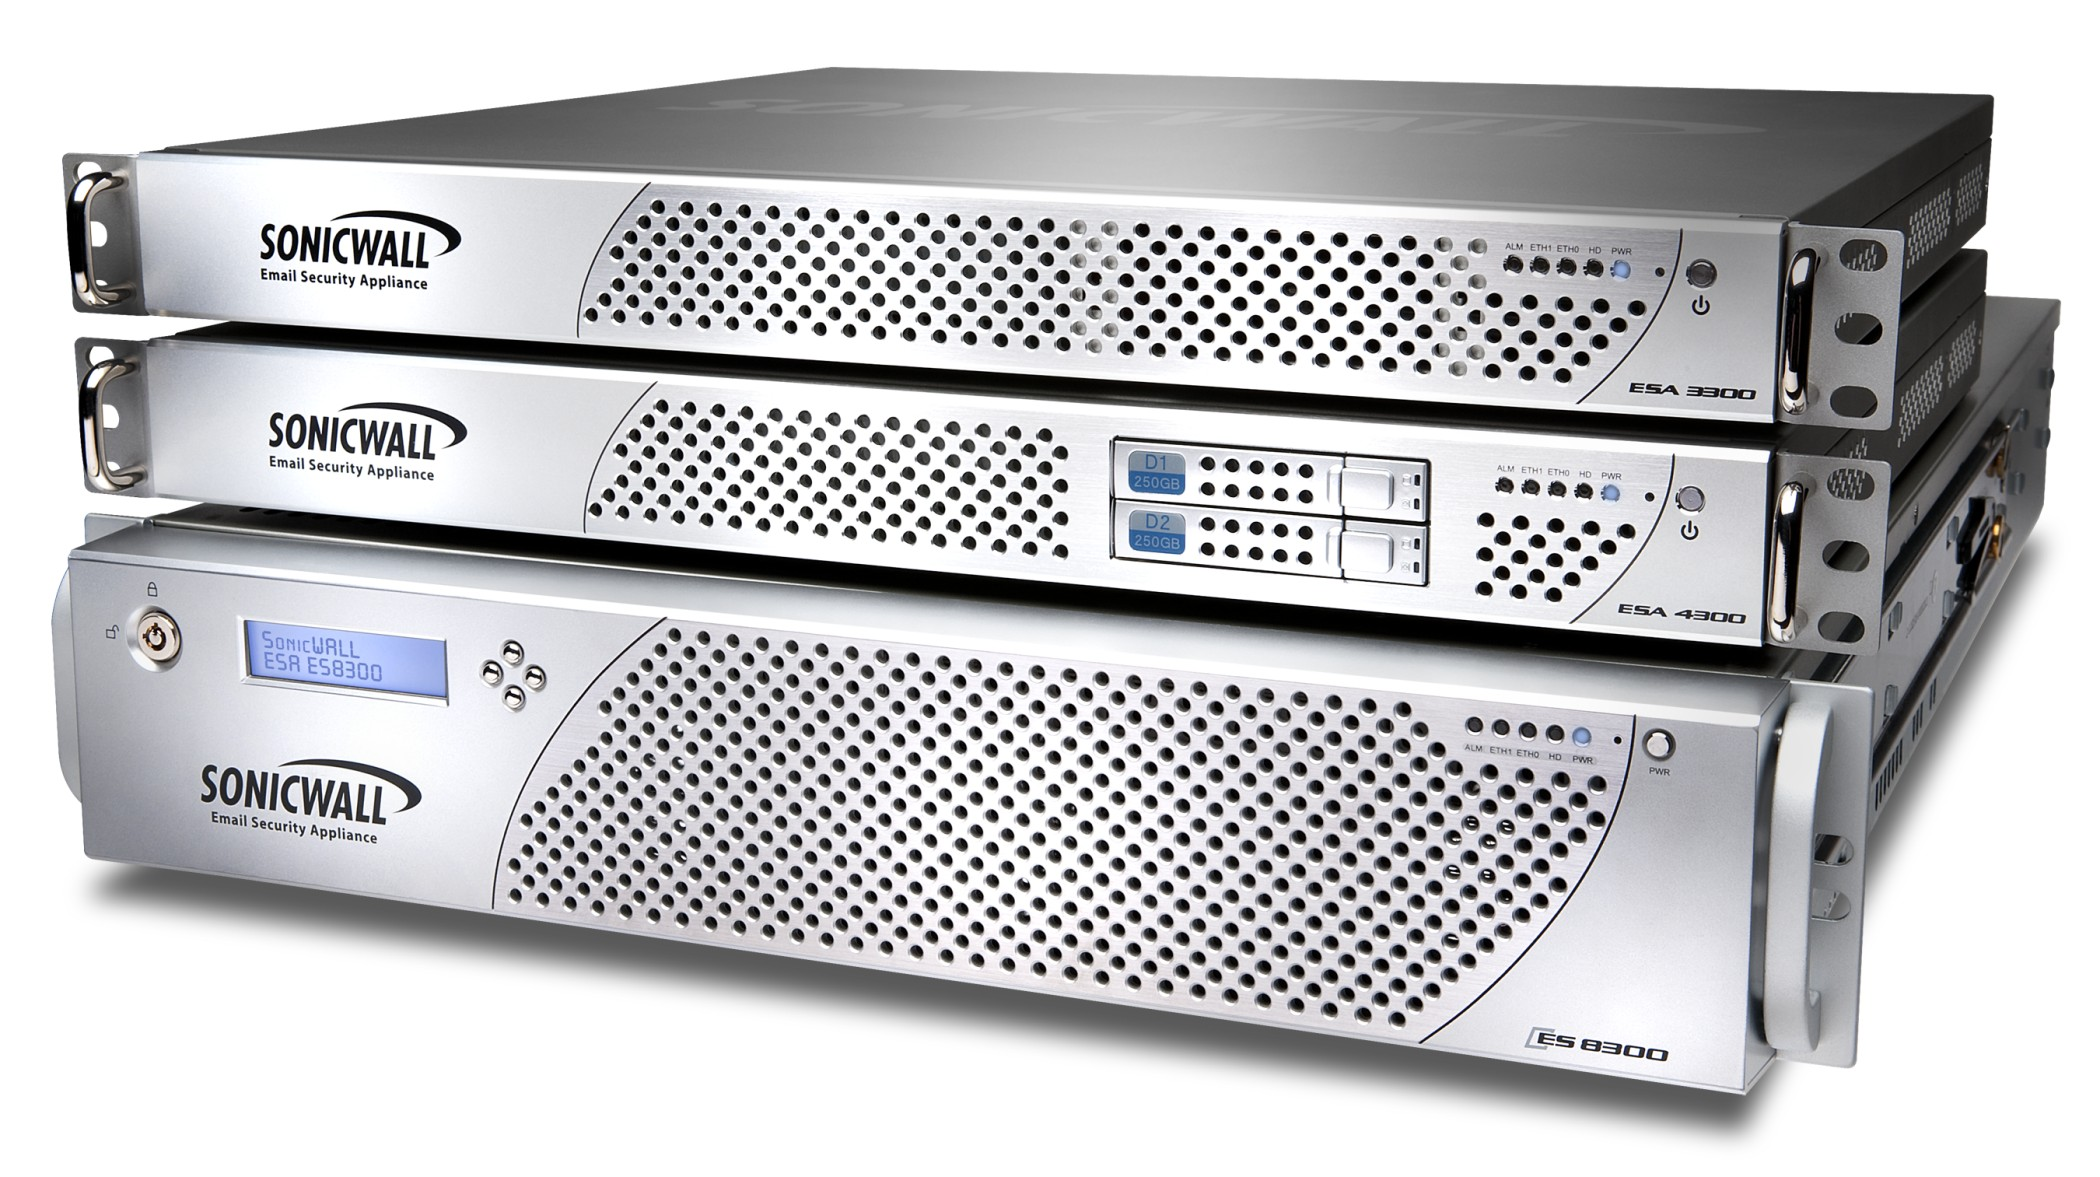 Sonicwall Loophold Security Distribution